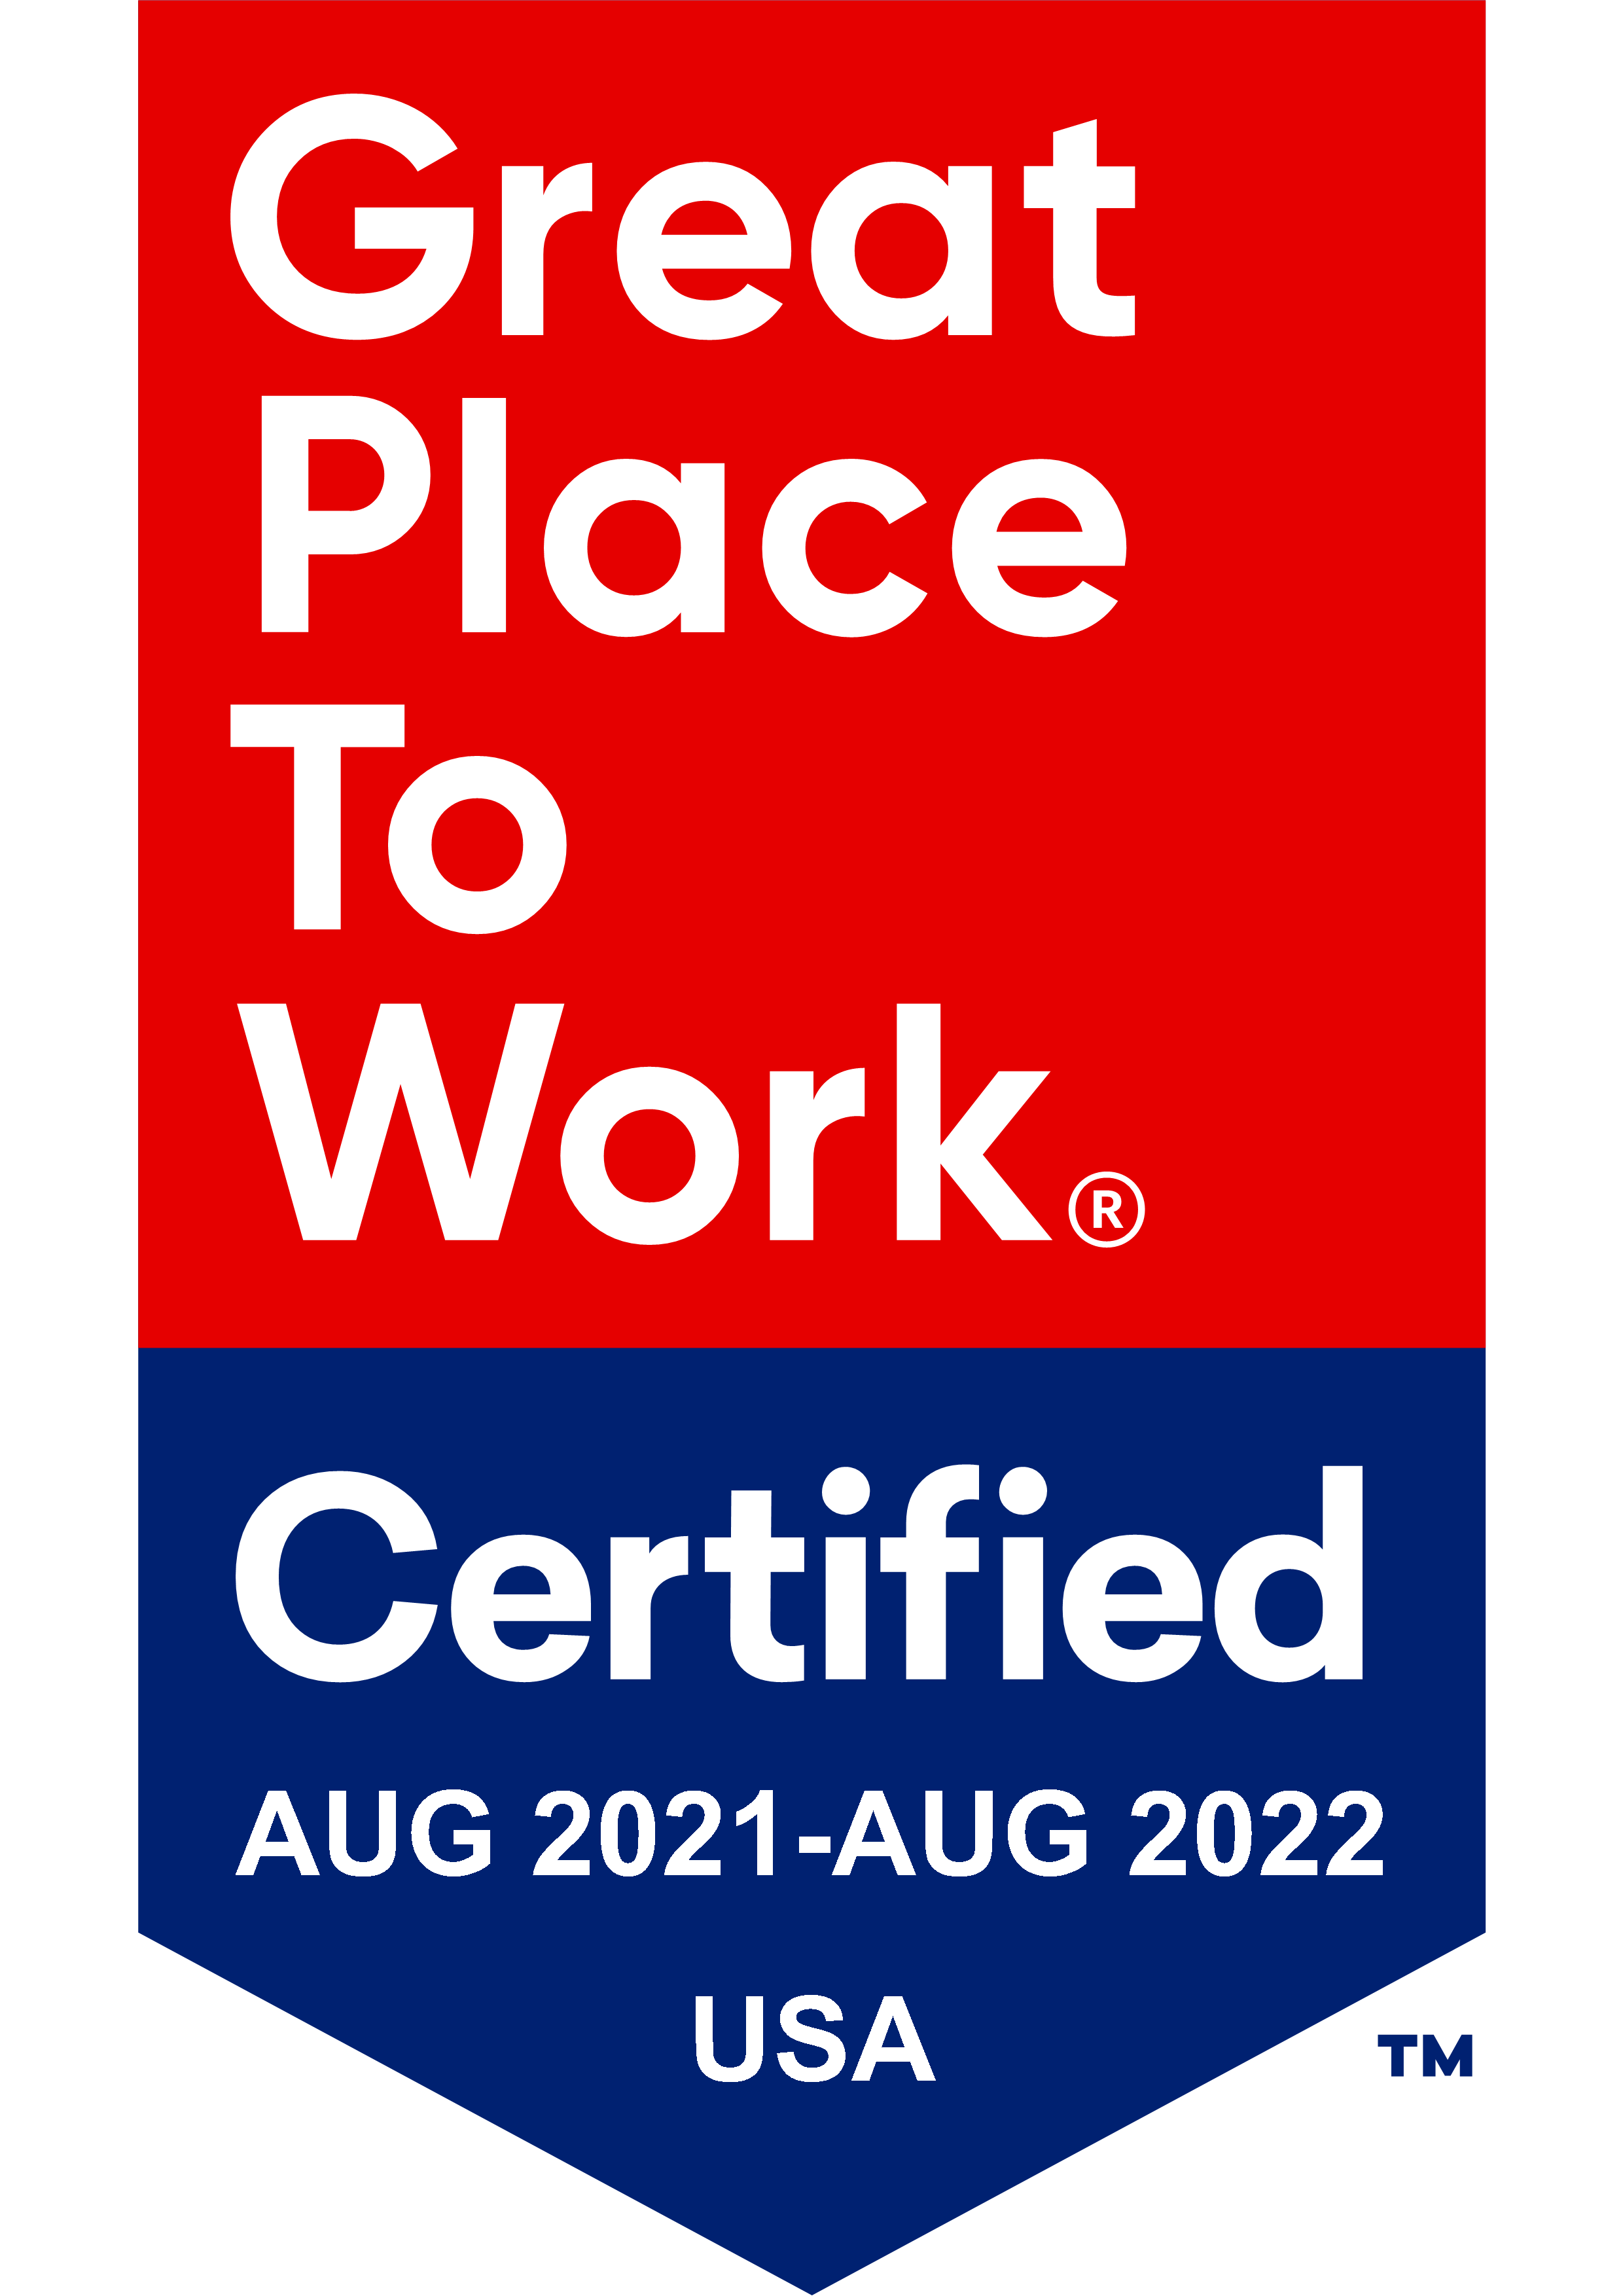 Great place to work certified Aug 2021 - Aug 2022